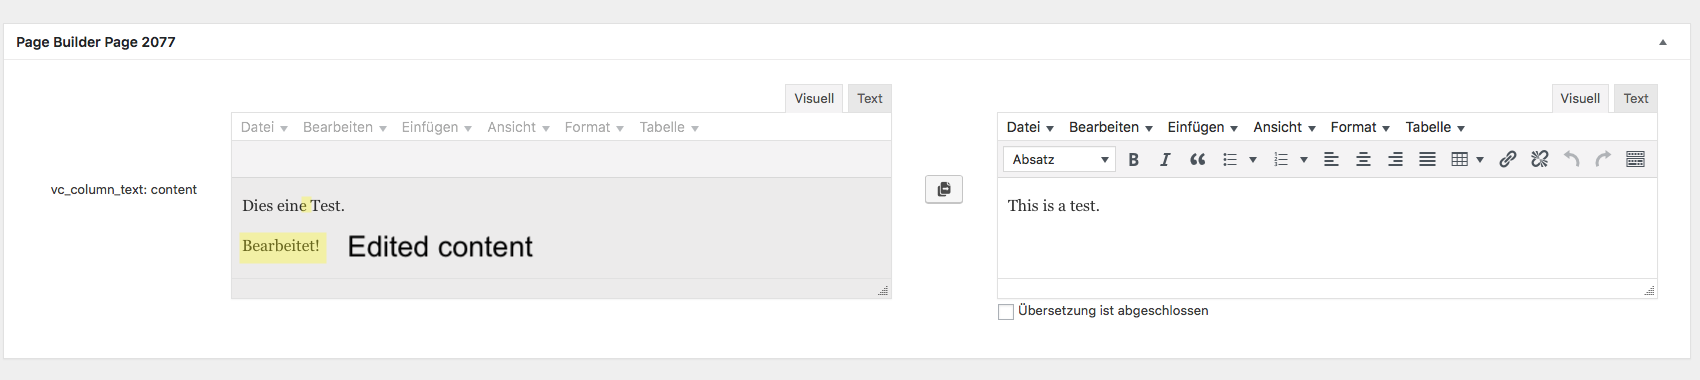 Show differences from page builder text blocks - WPML